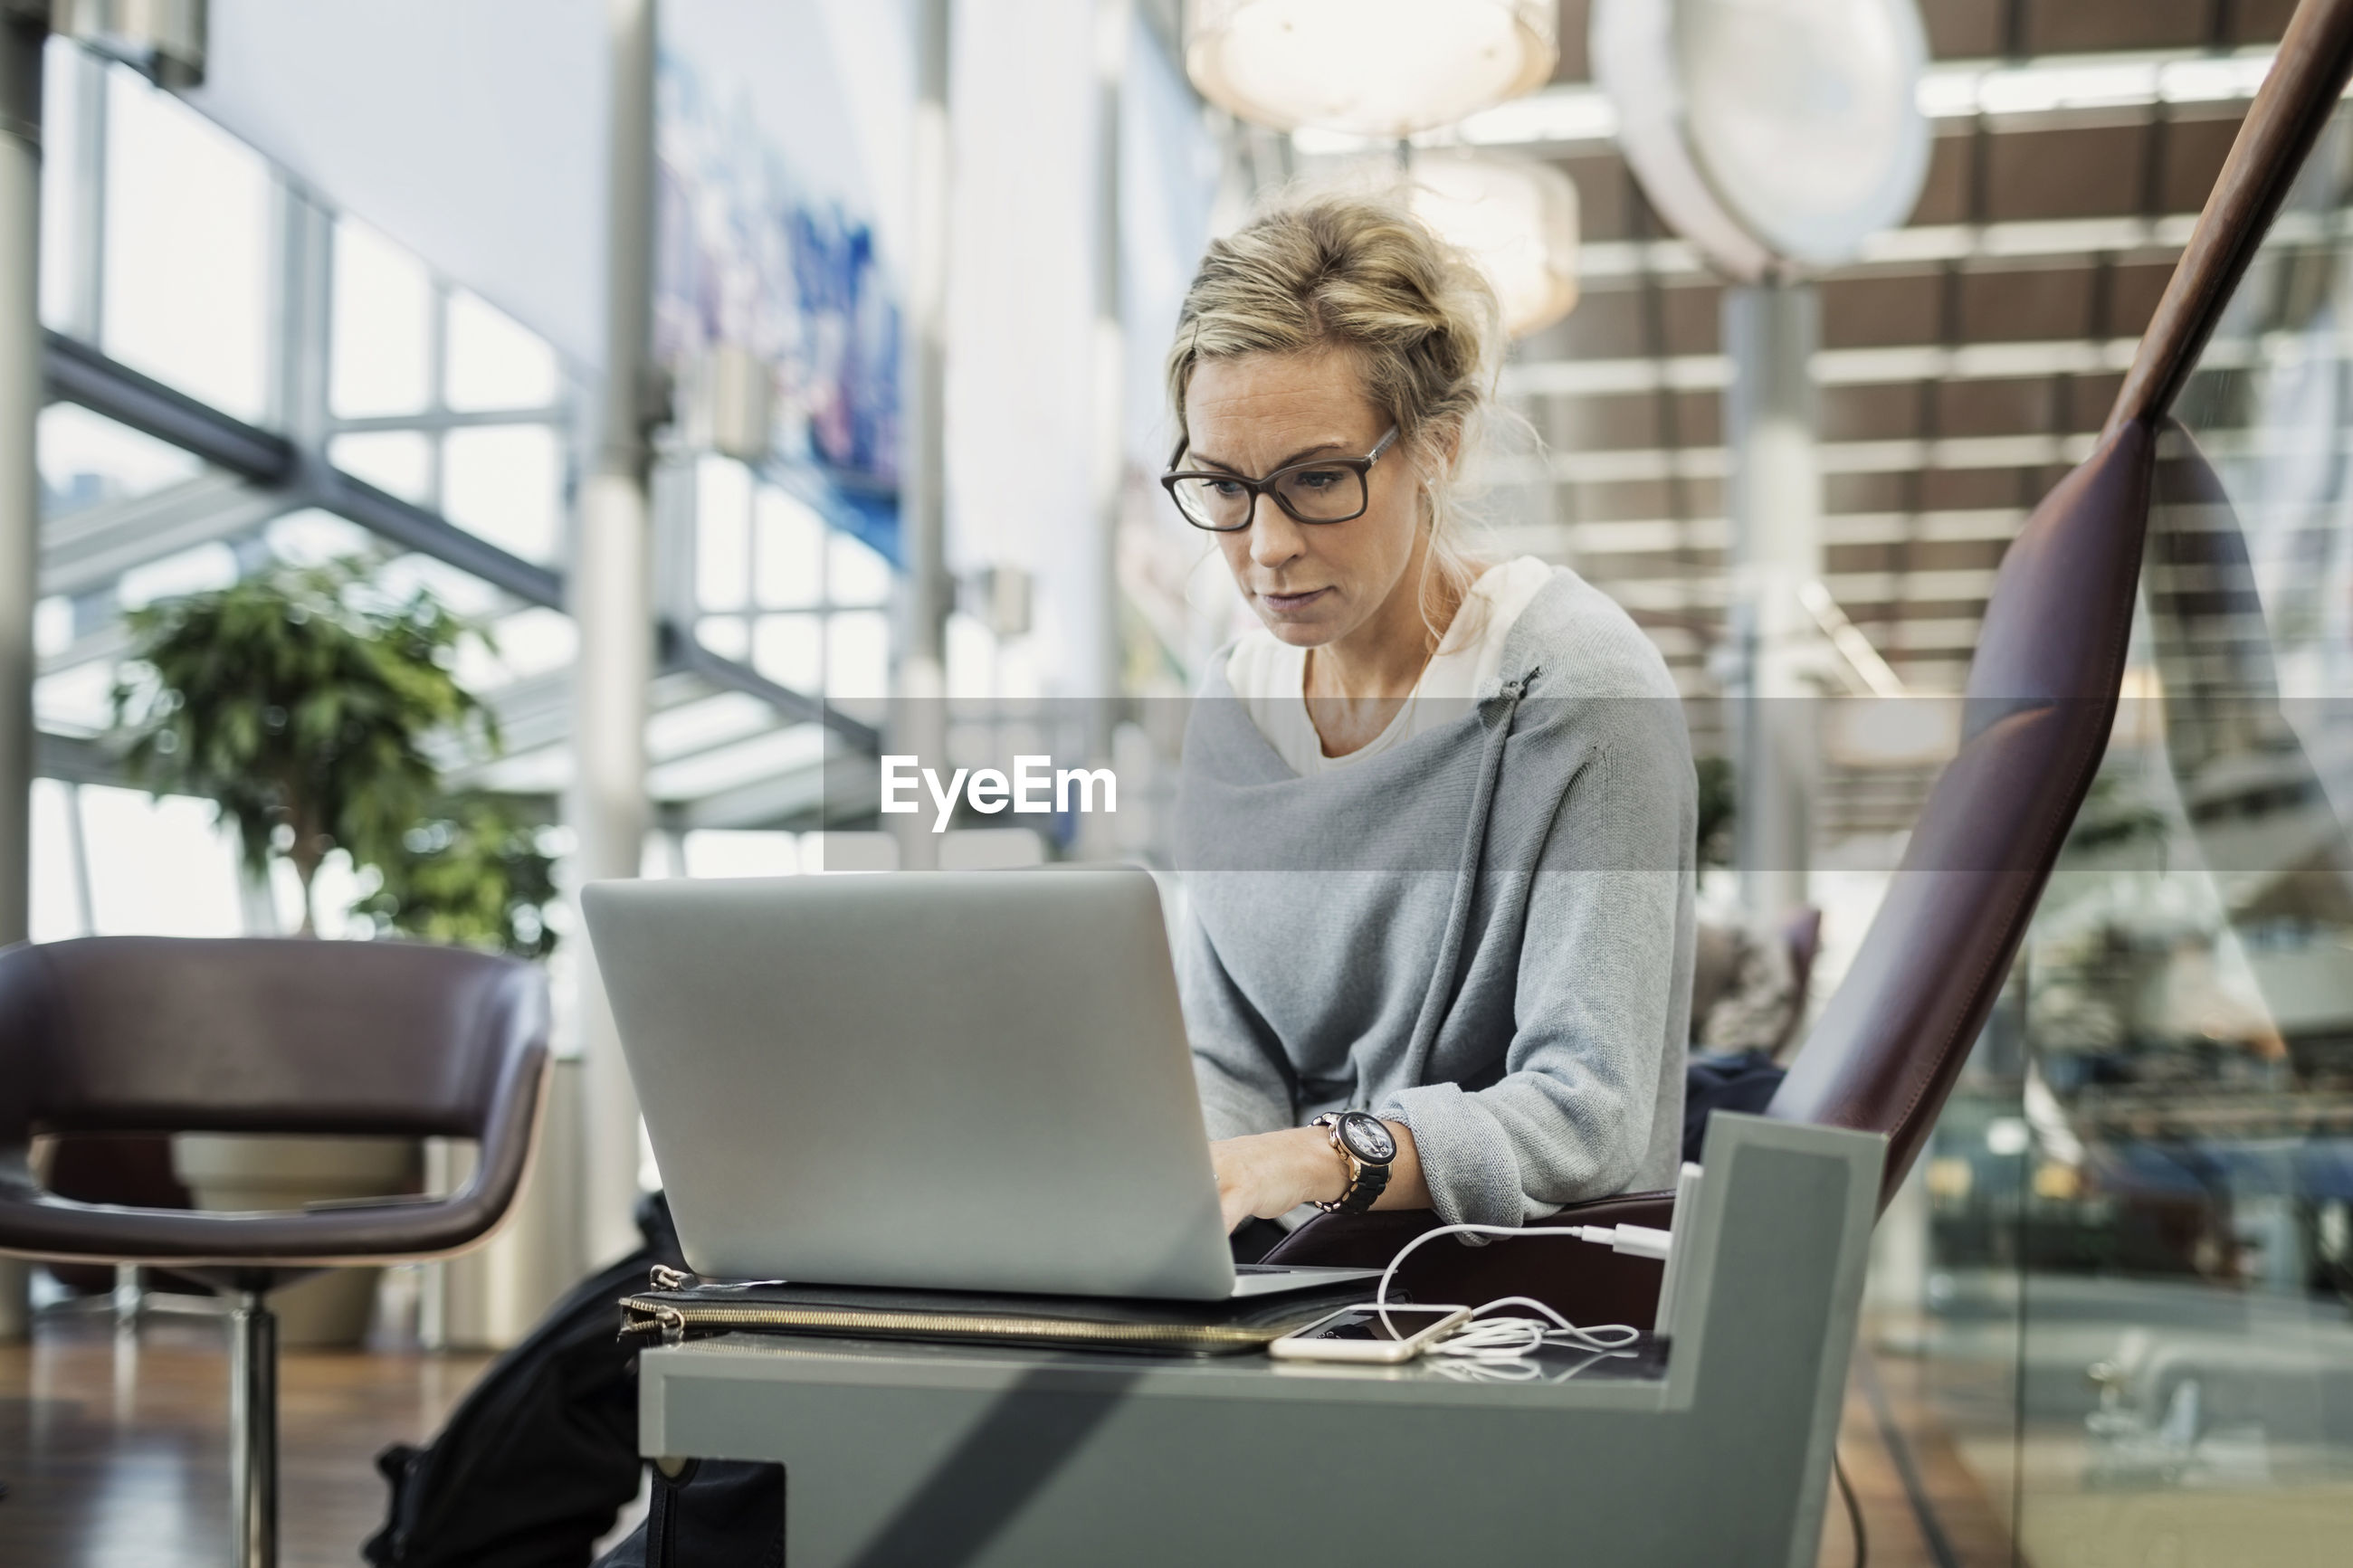 MIDSECTION OF WOMAN WORKING WITH LAPTOP